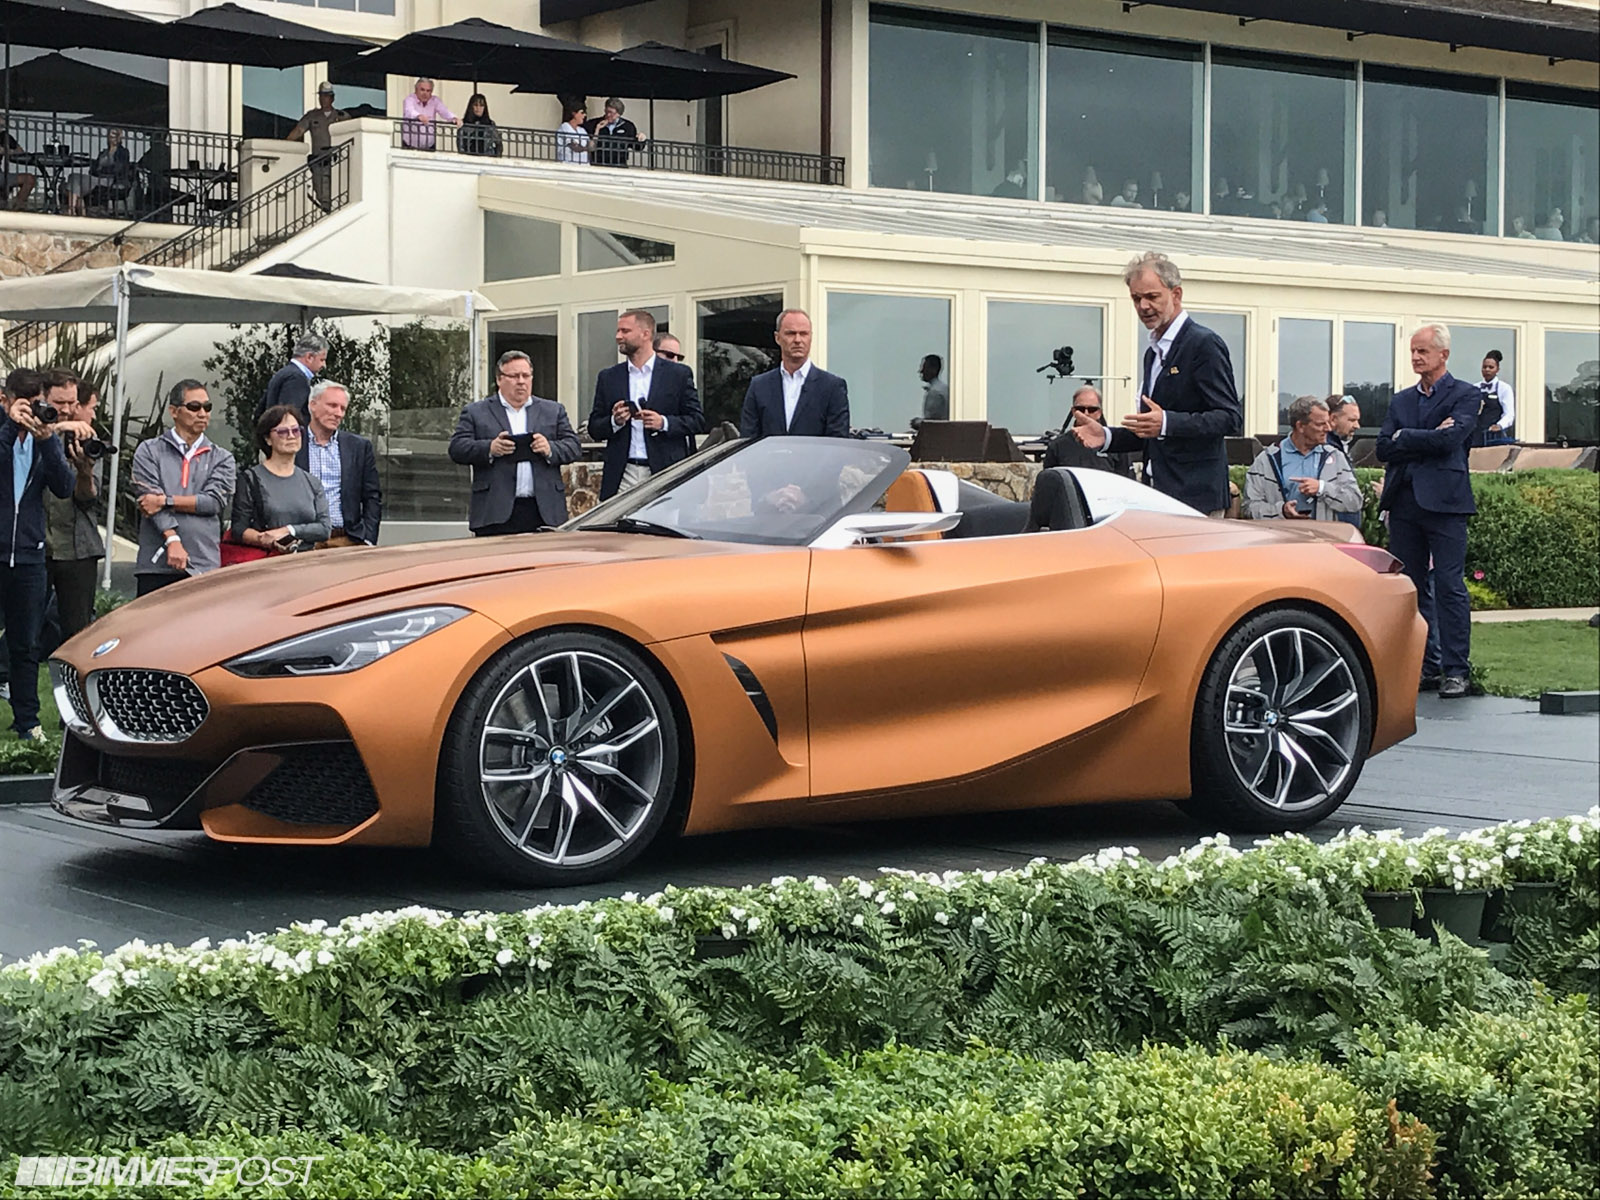 2019 Bmw Z4 News Concept And Spy Shots Thread Page 20 Supramkv